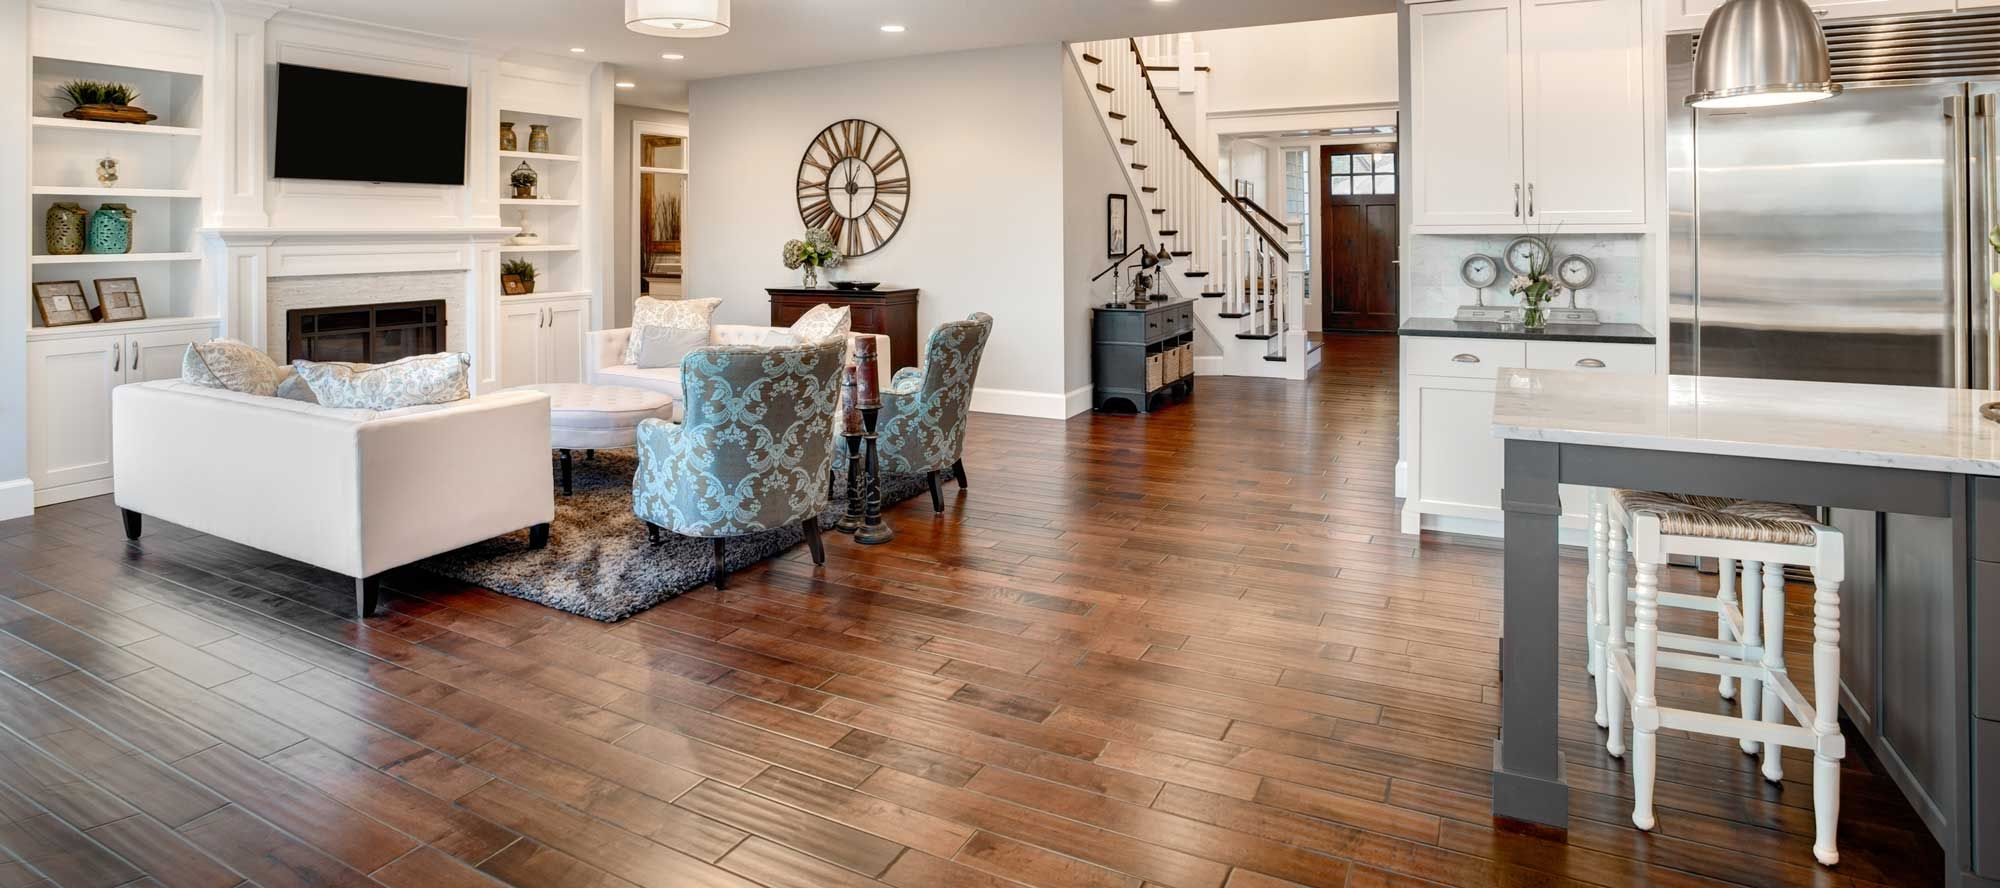 Cost to Install Hardwood Floor 2020 Calculator and Price